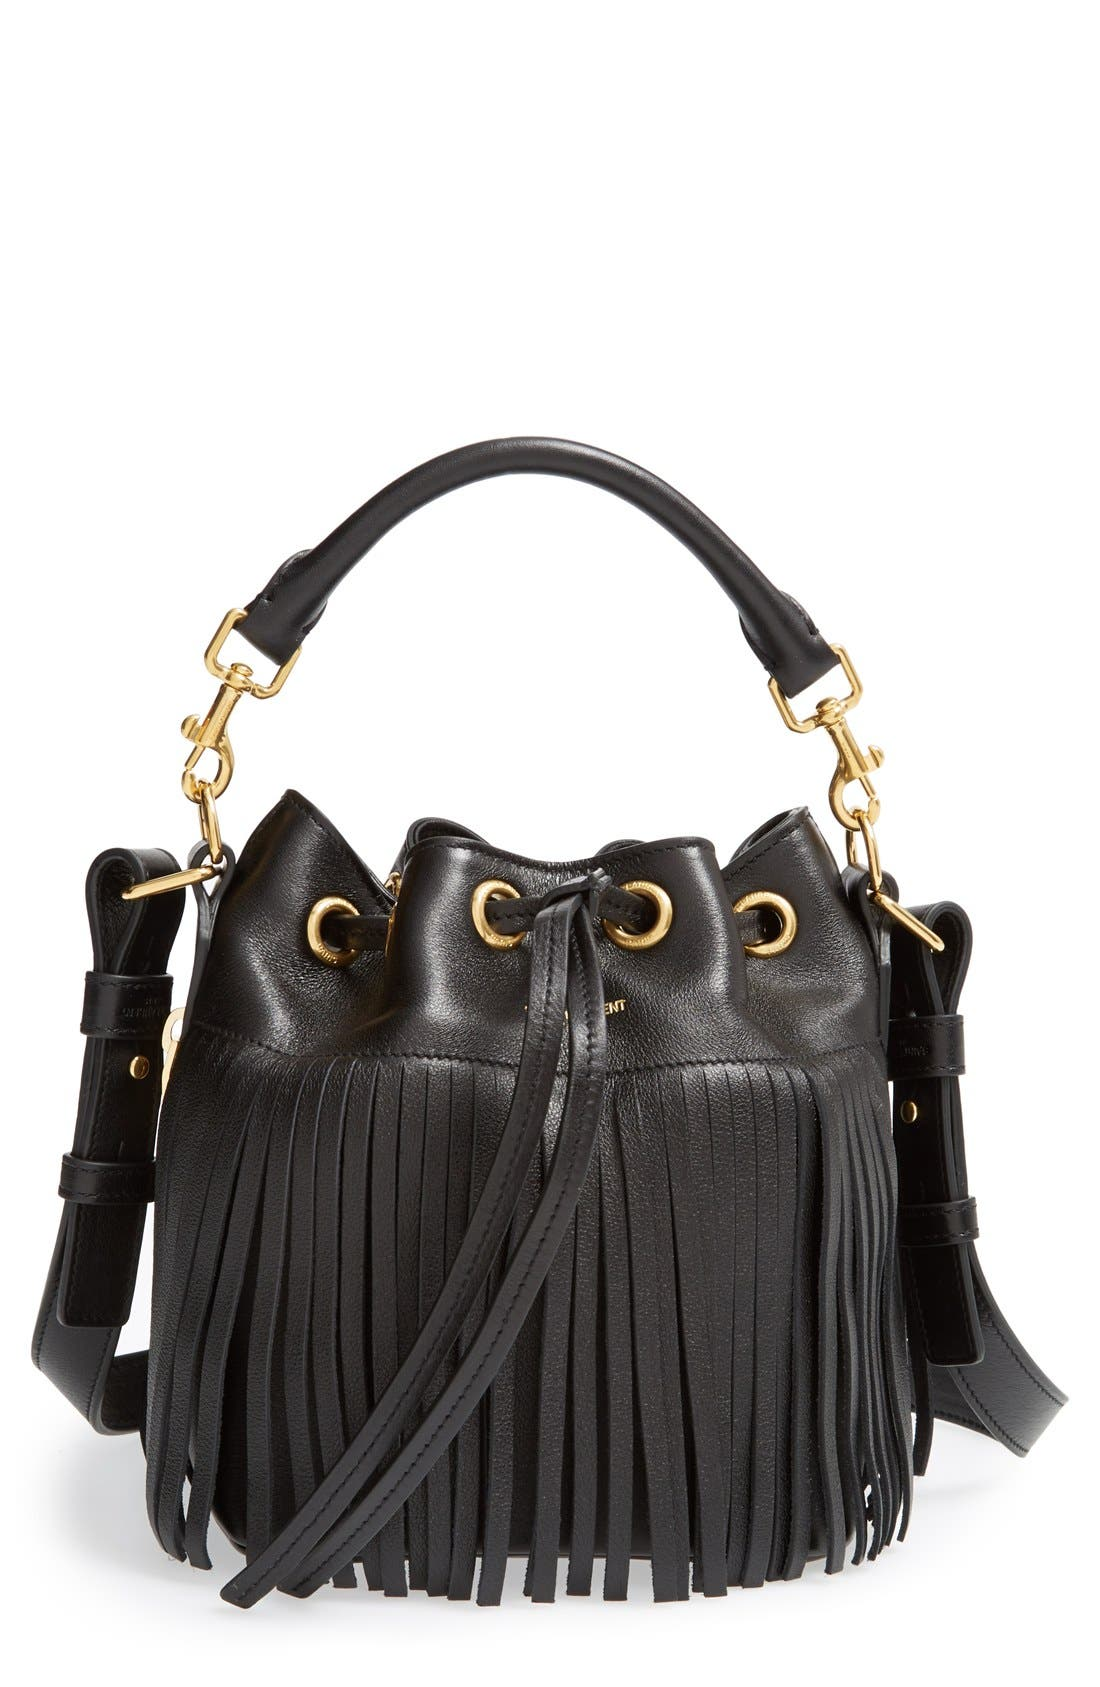 Main Image - Saint Laurent Fringe Calfskin Bucket Bag